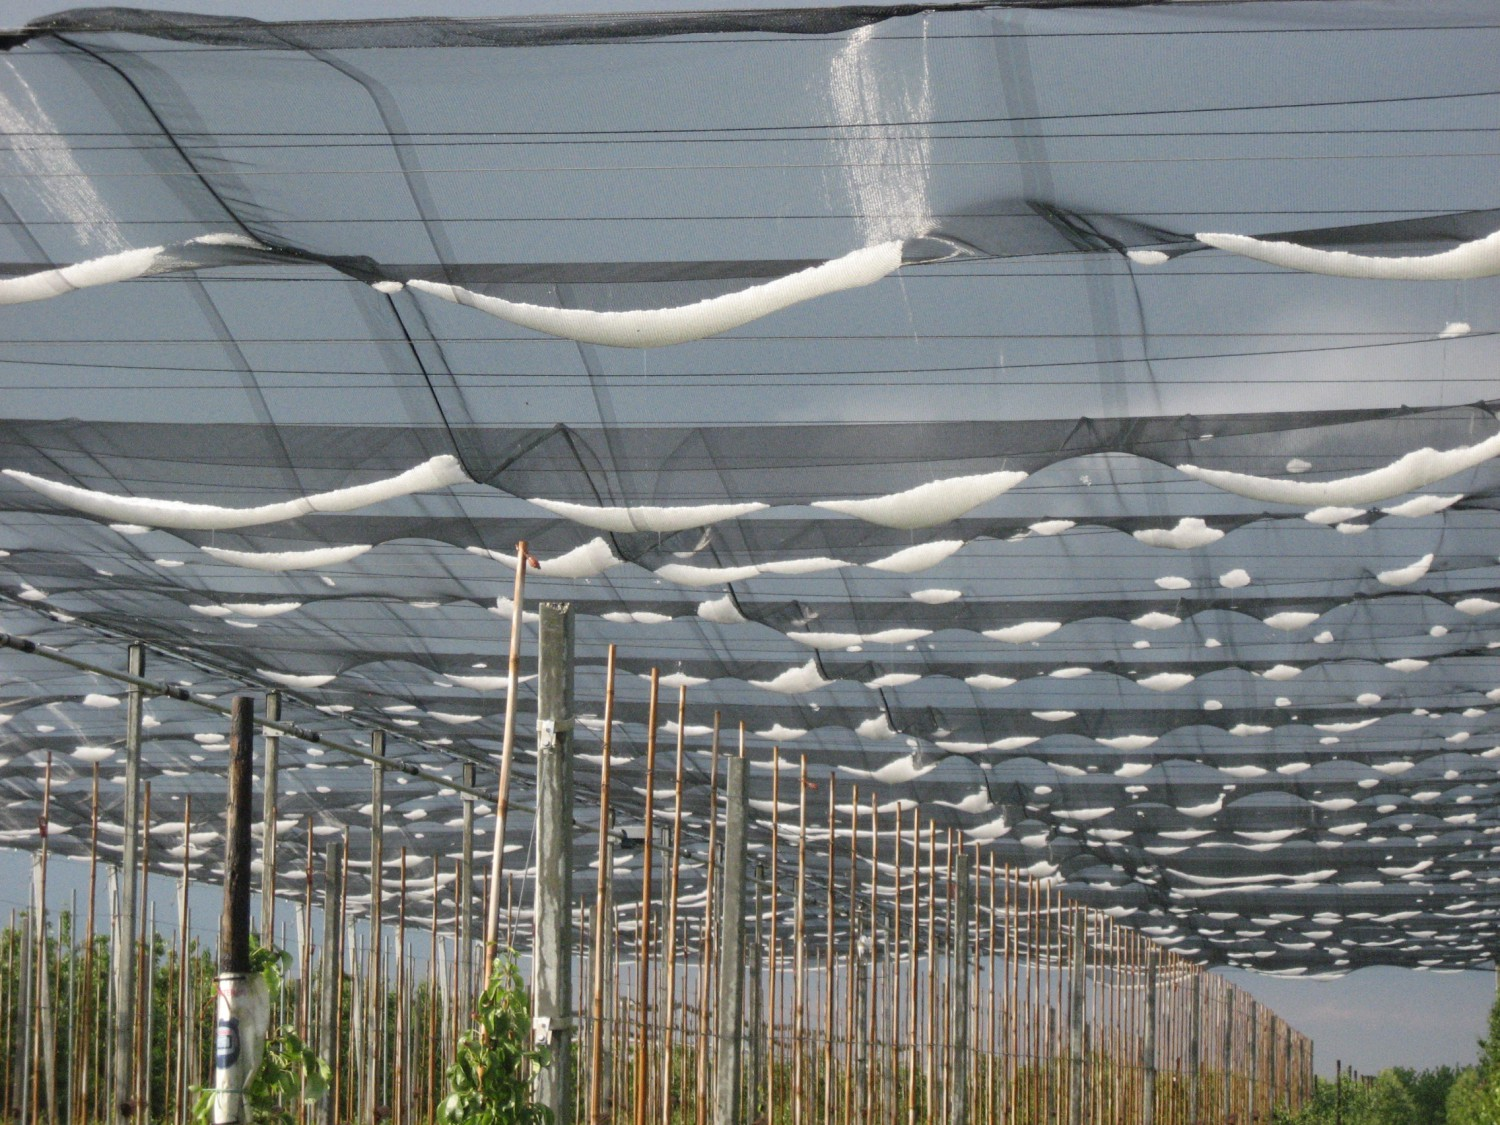 Fewer sleepless nights for fruit growers thanks to hail nets